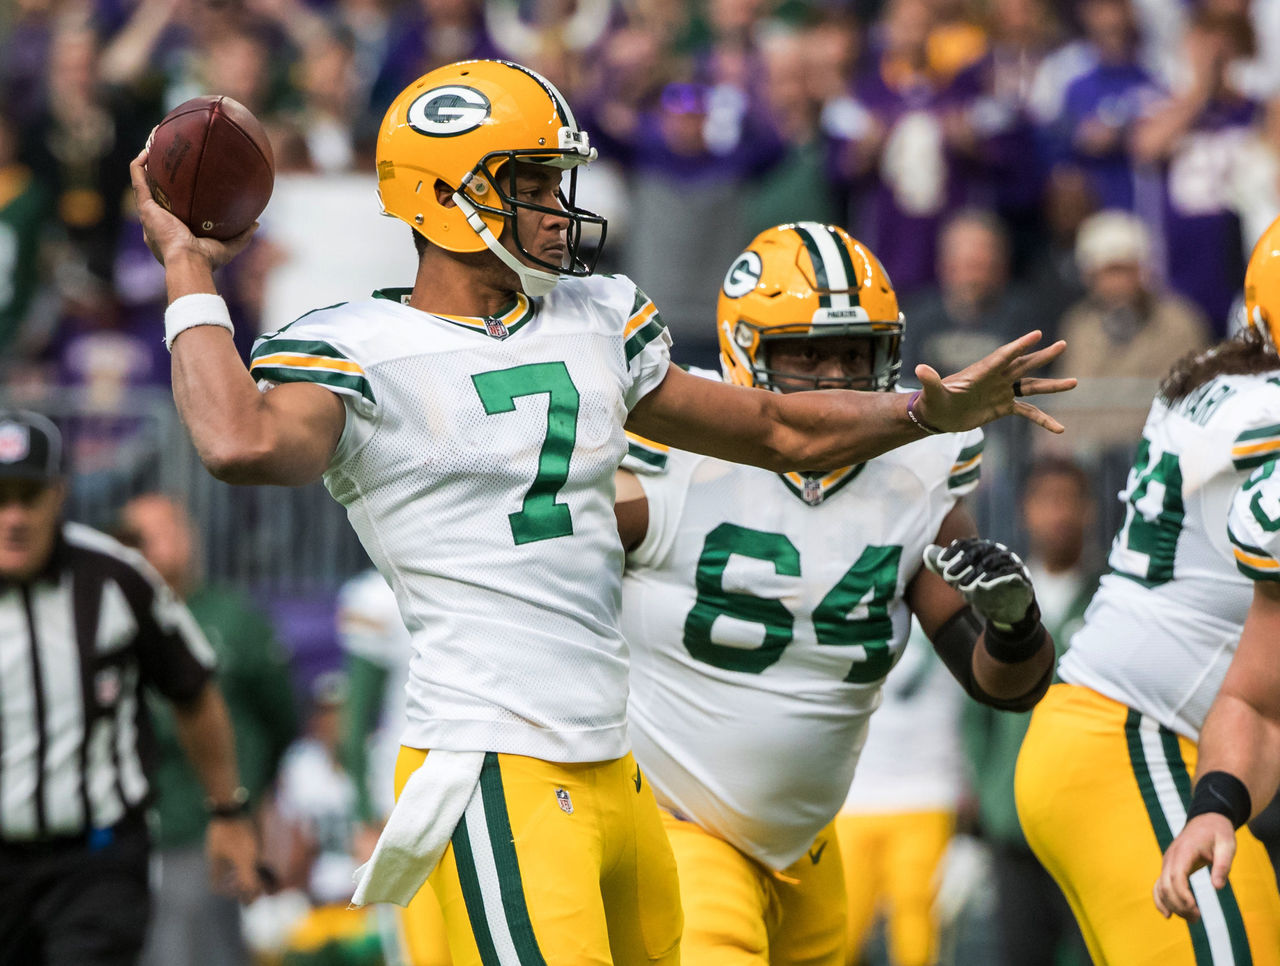 Cropped 2017 10 15t192714z 802149702 nocid rtrmadp 3 nfl green bay packers at minnesota vikings